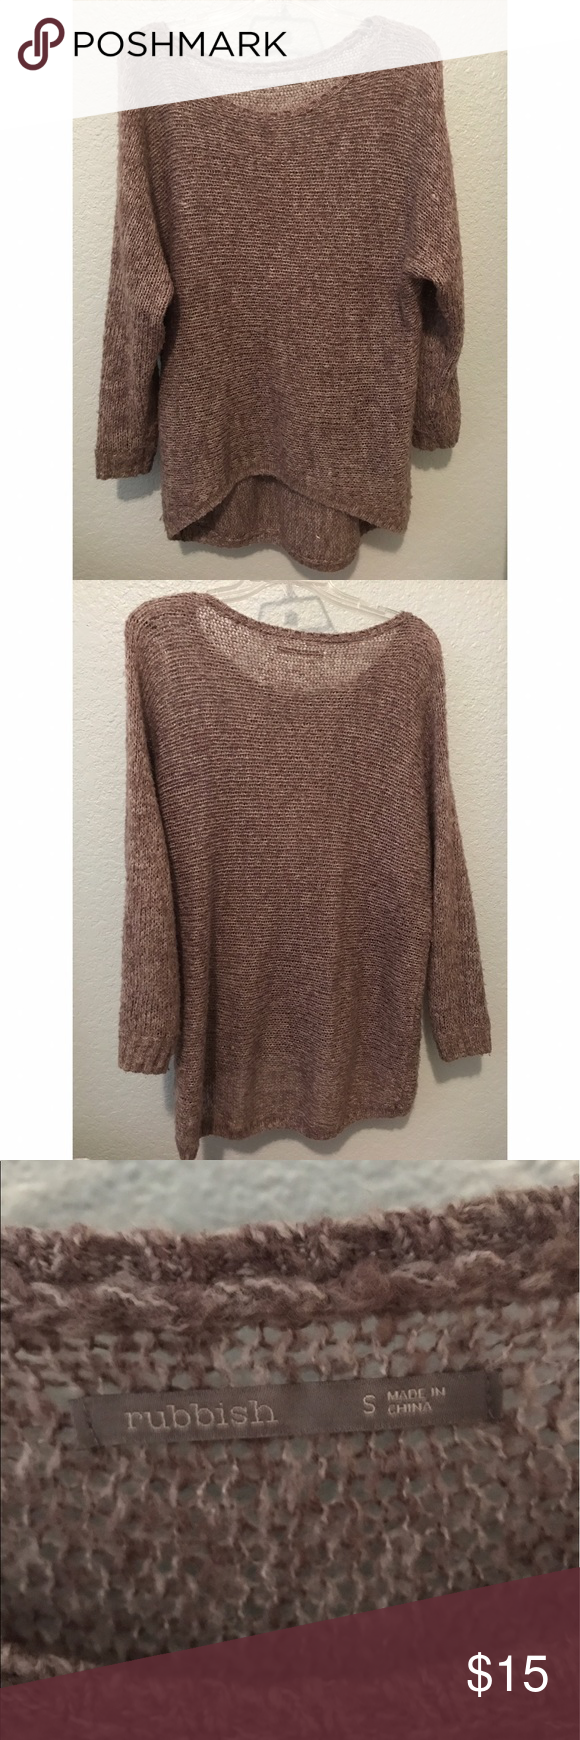 Oversized Knit Sweater Super cute oversized knit sweater! Great ...